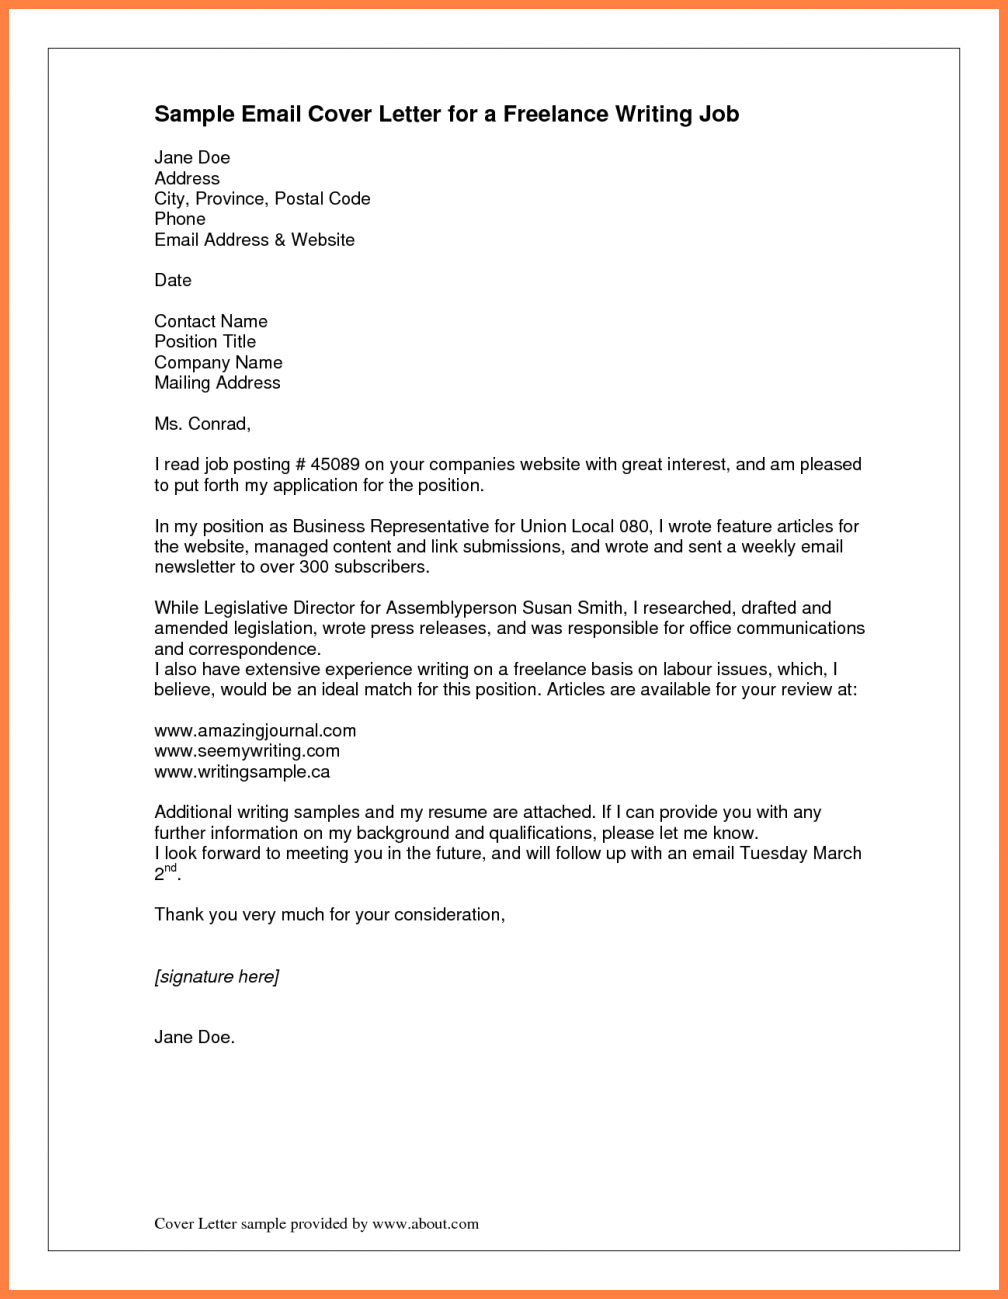 Sample email cover letter for business proposal images cover letter slideshare job application cover easy resume mortgage letter slideshare job application cover easy resume mortgage stopboris Image collections